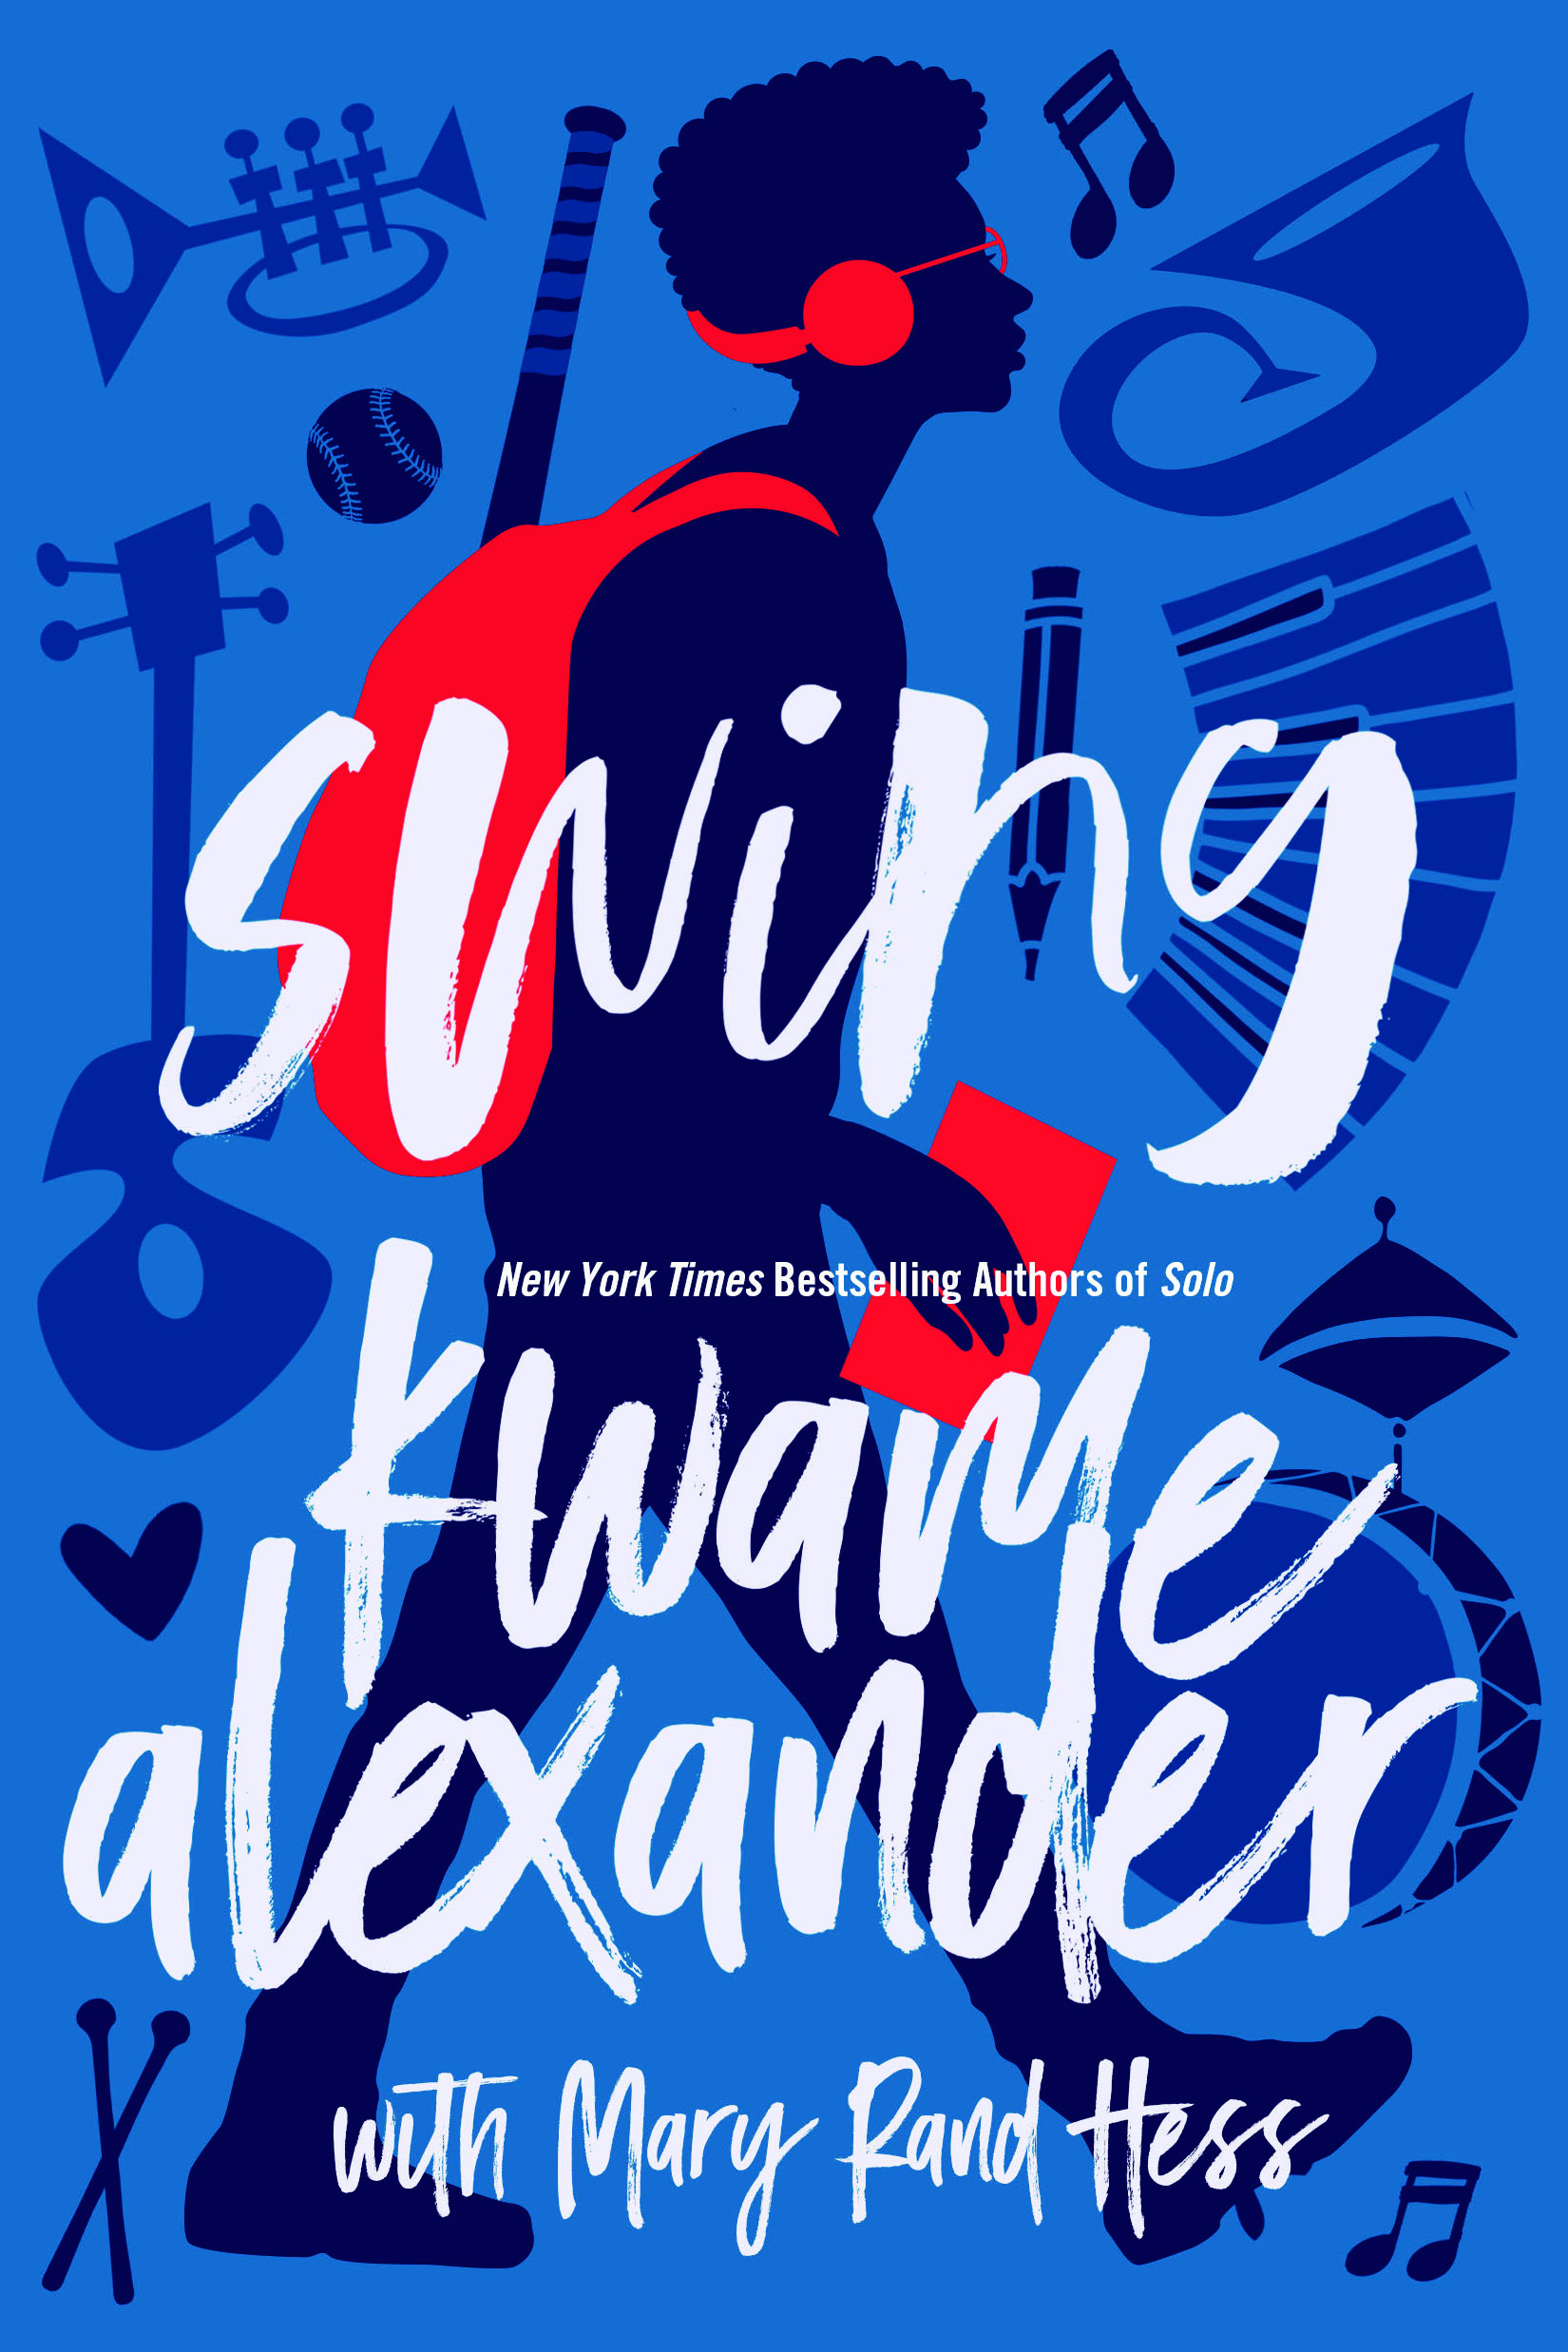 Exclusive Cover Reveal! SWING by Kwame Alexander and Mary Rand Hess